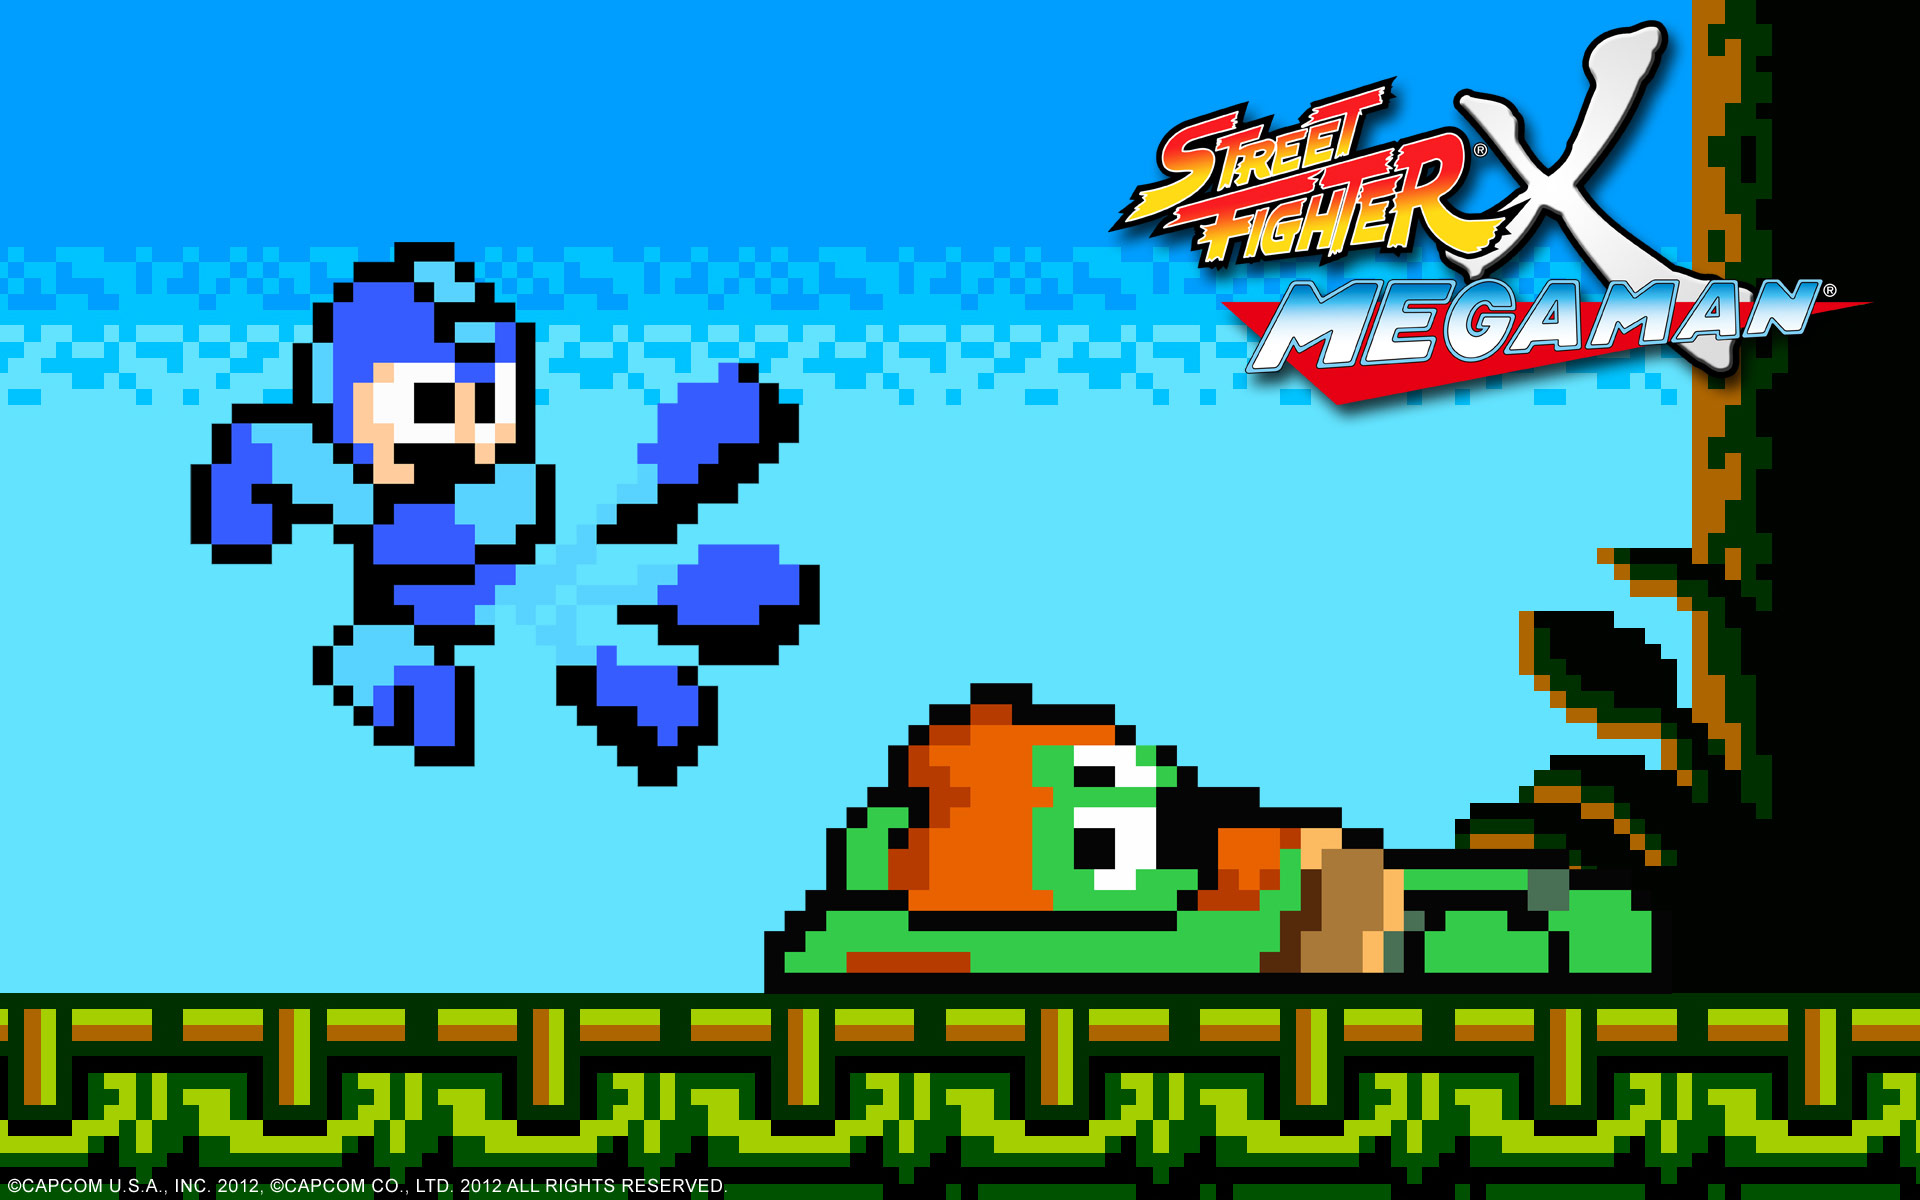 Street Fighter X Mega Man wallpaper #1